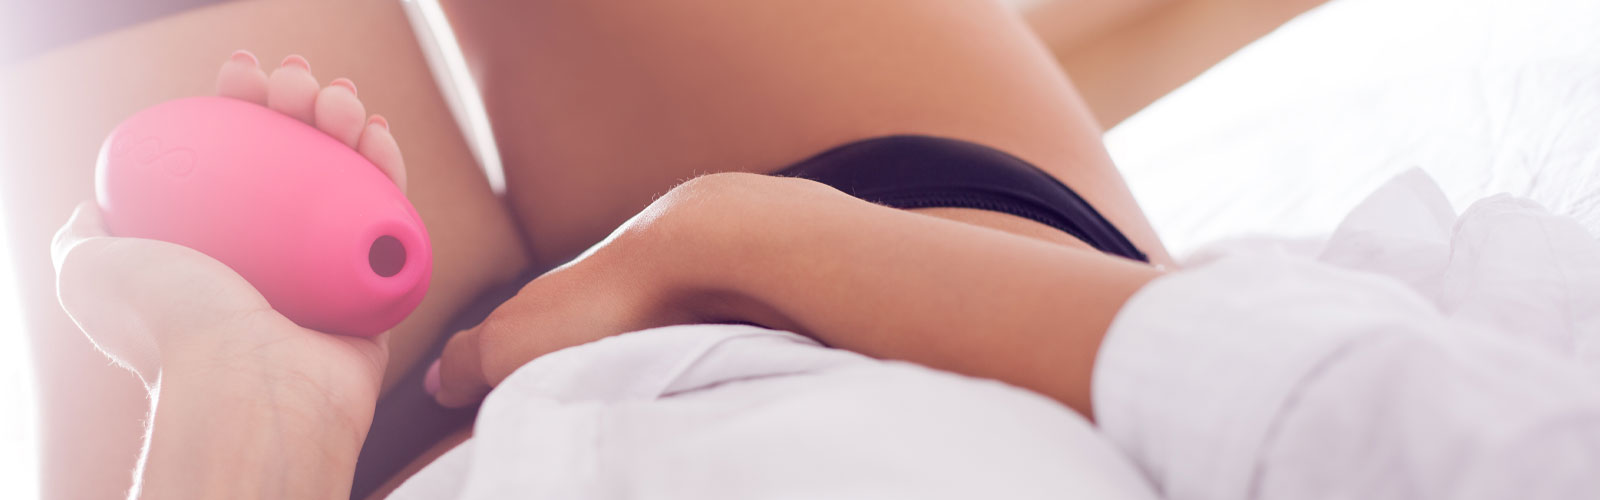 Woman holding clitoral stimulator in bed